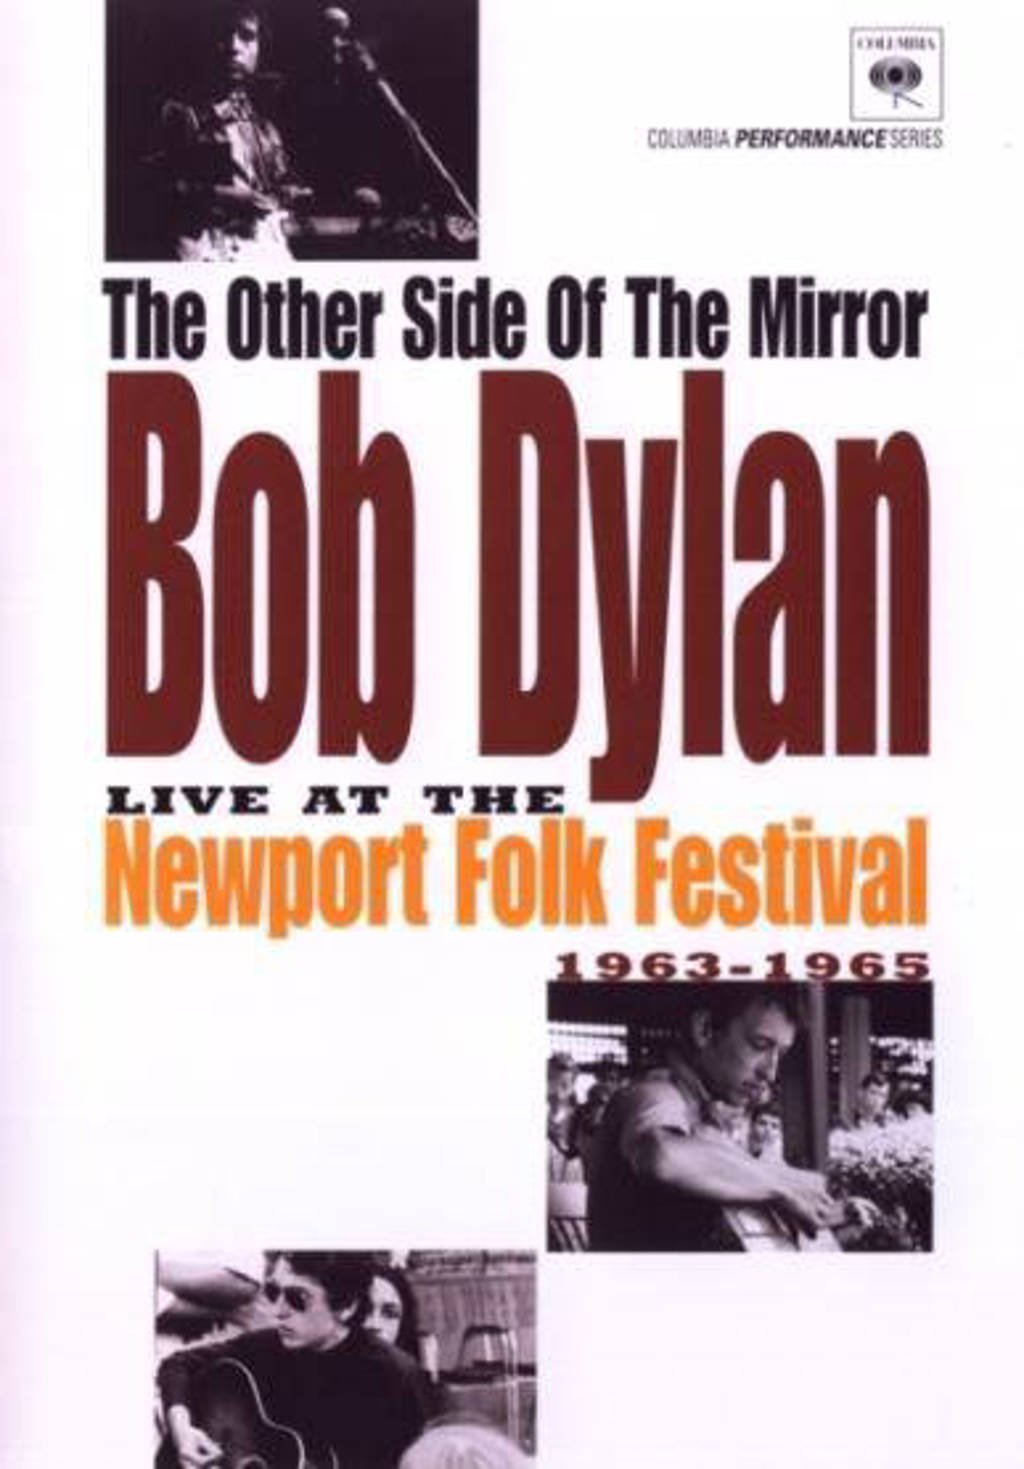 Bob Dylan - The other side of the mirror (DVD)